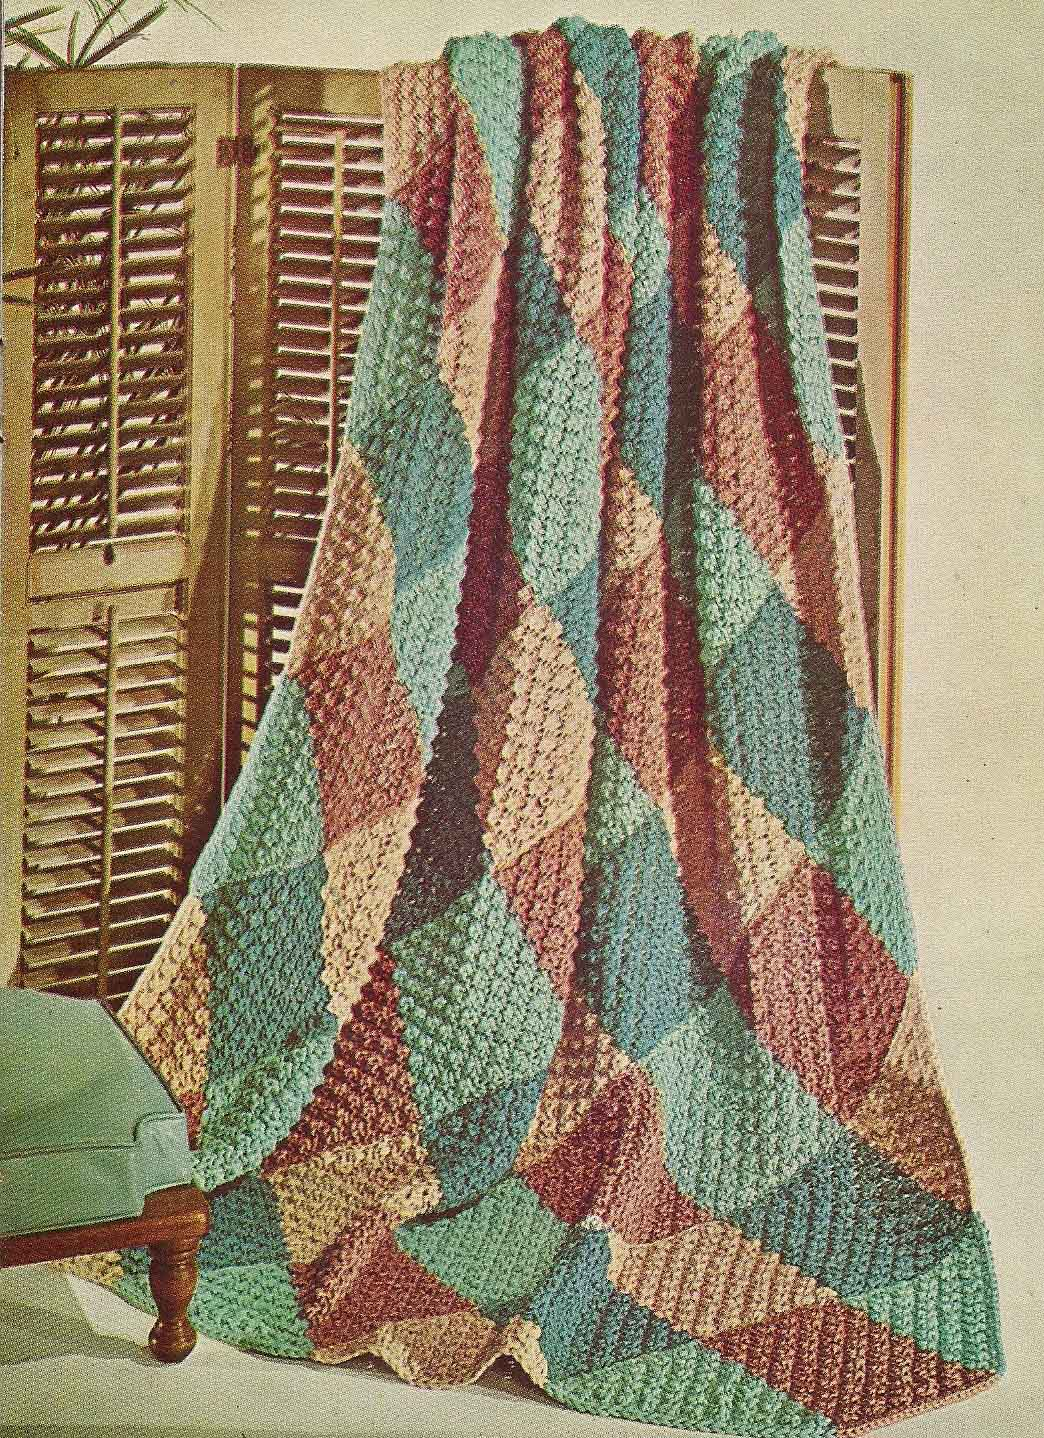 Knitted Popcorn Stitch Afghan : Vintage Knit Crochet Pattern Shop: Sweaters Afghans Knitting Crochet Patterns...